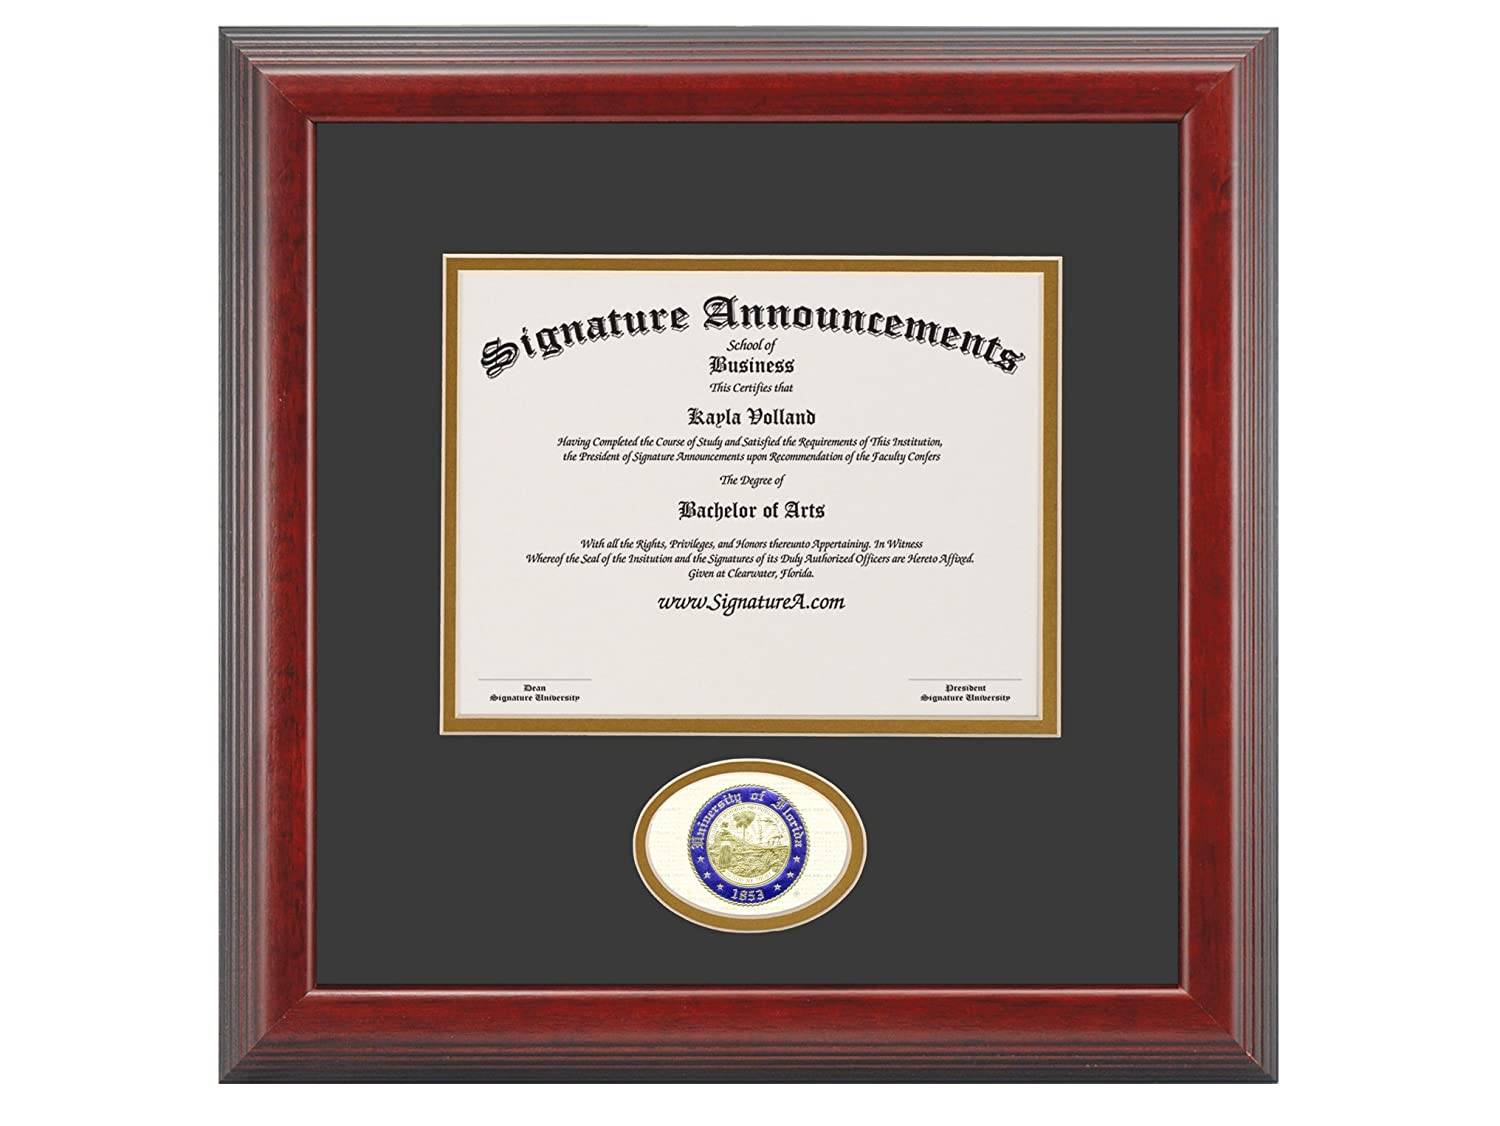 Signature Announcements University of Florida UF Undergraduate and Graduate Graduation Diploma Frame with Sculpted Foil Seal Cherry, 20 x 20